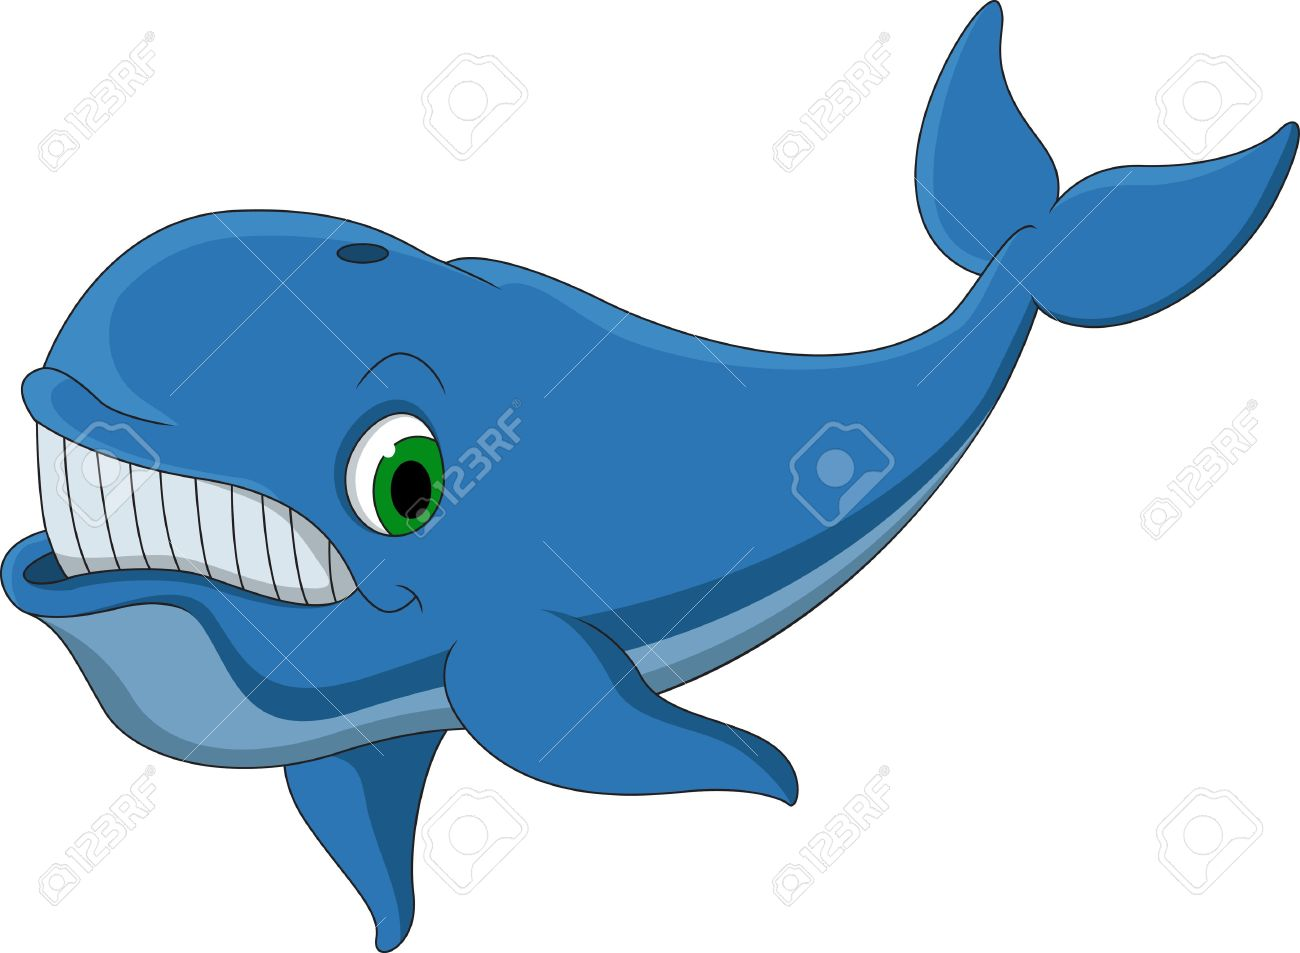 Baleine clipart #18, Download drawings